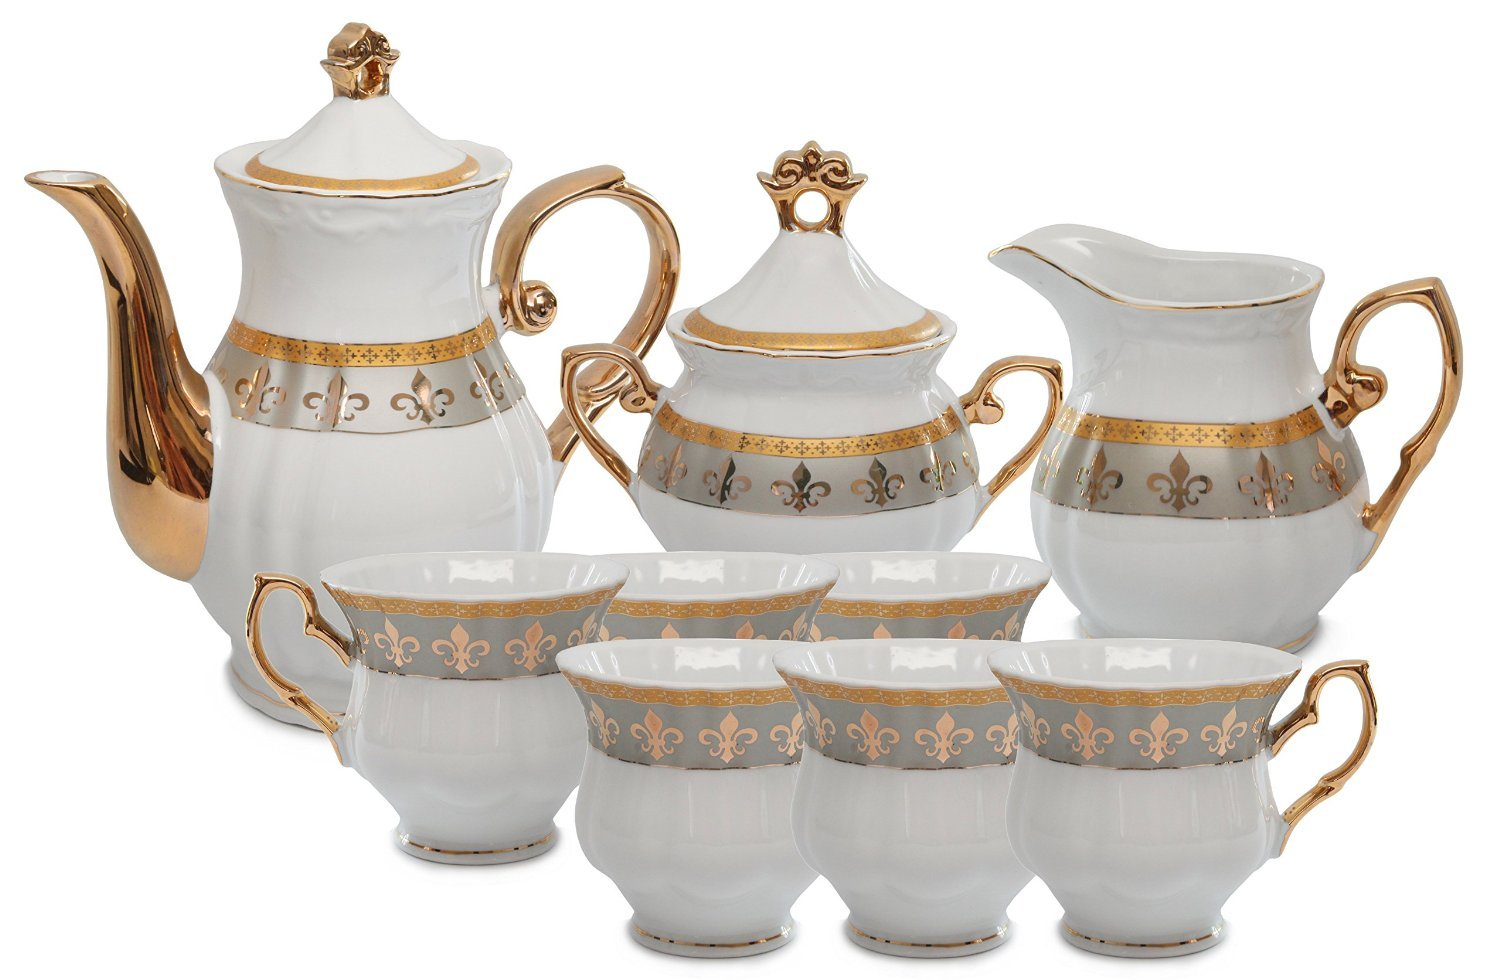 Royalty Porcelain 15pc Fleur-de-Lis Tea Set, Service for 6, 24K Gold-Plated Bone China Tableware